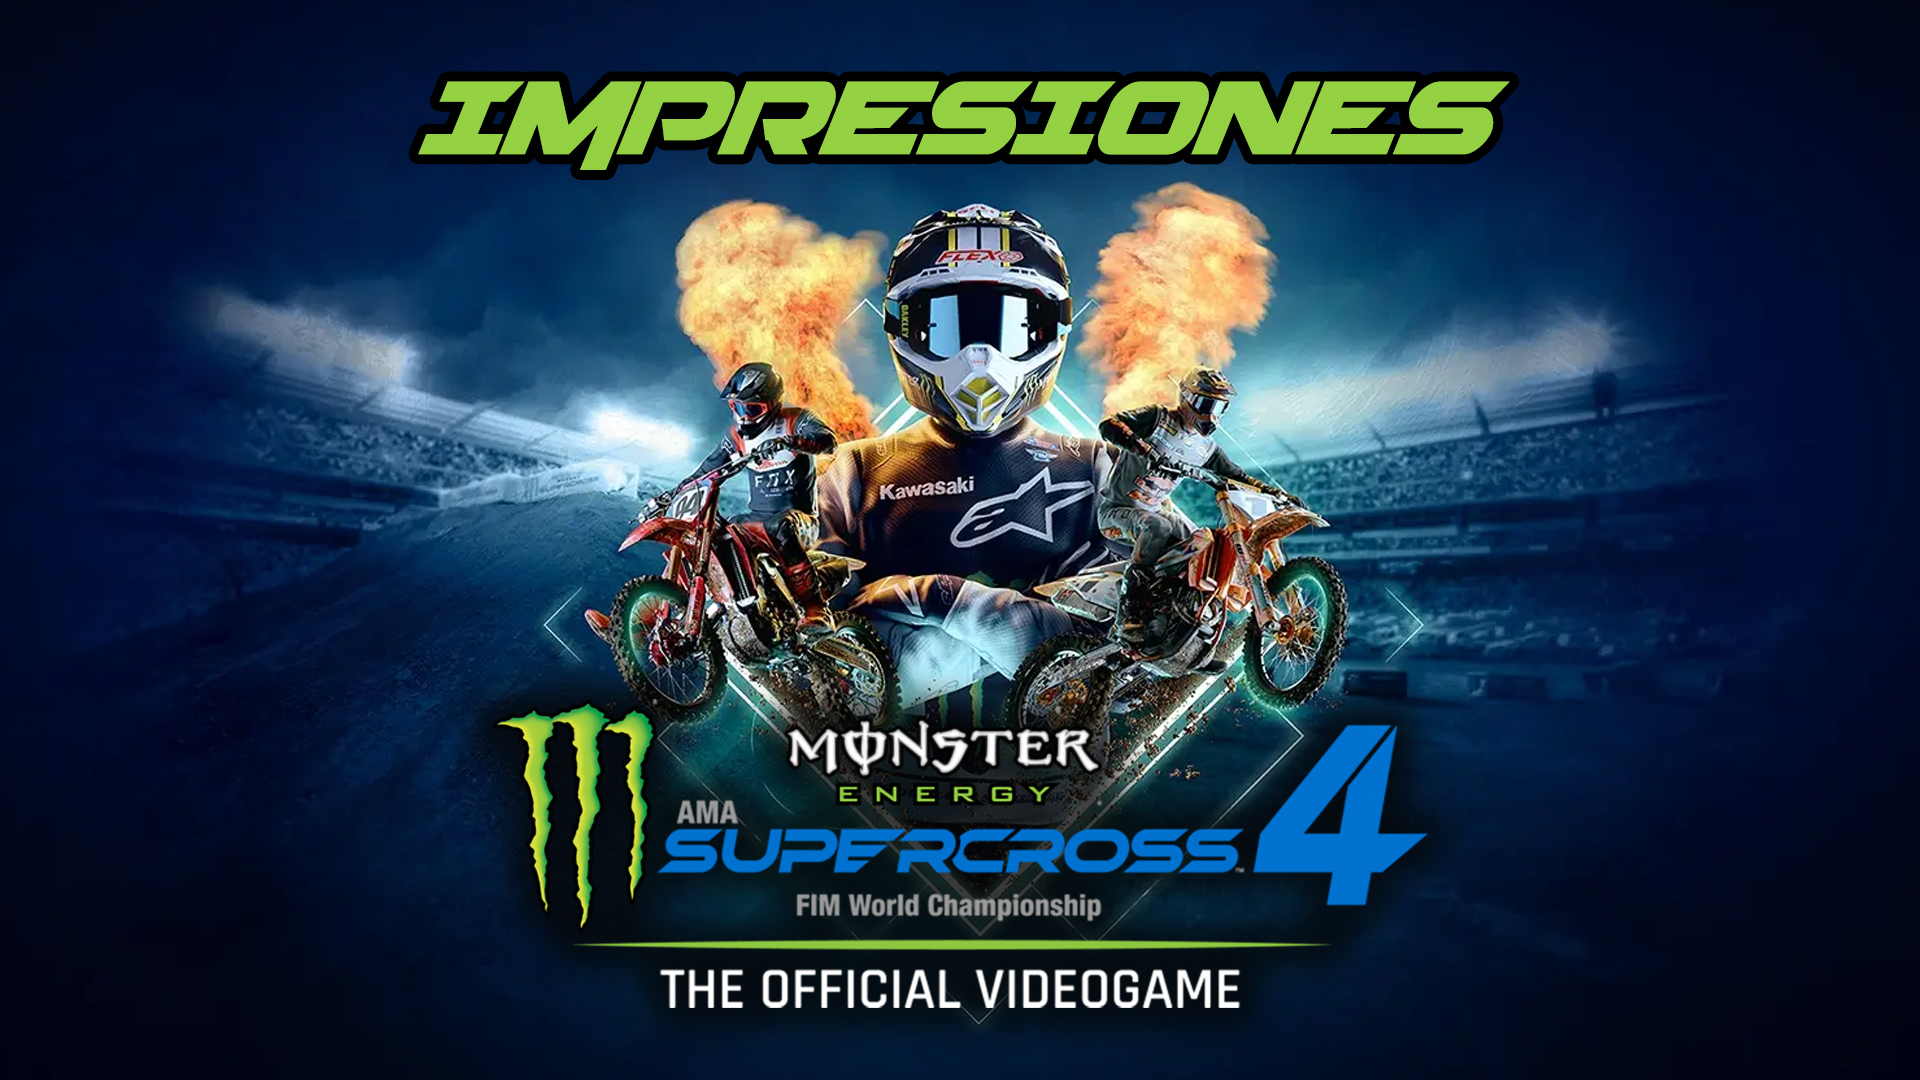 Impresiones Monster Energy Supercross – The Official Videogame 4